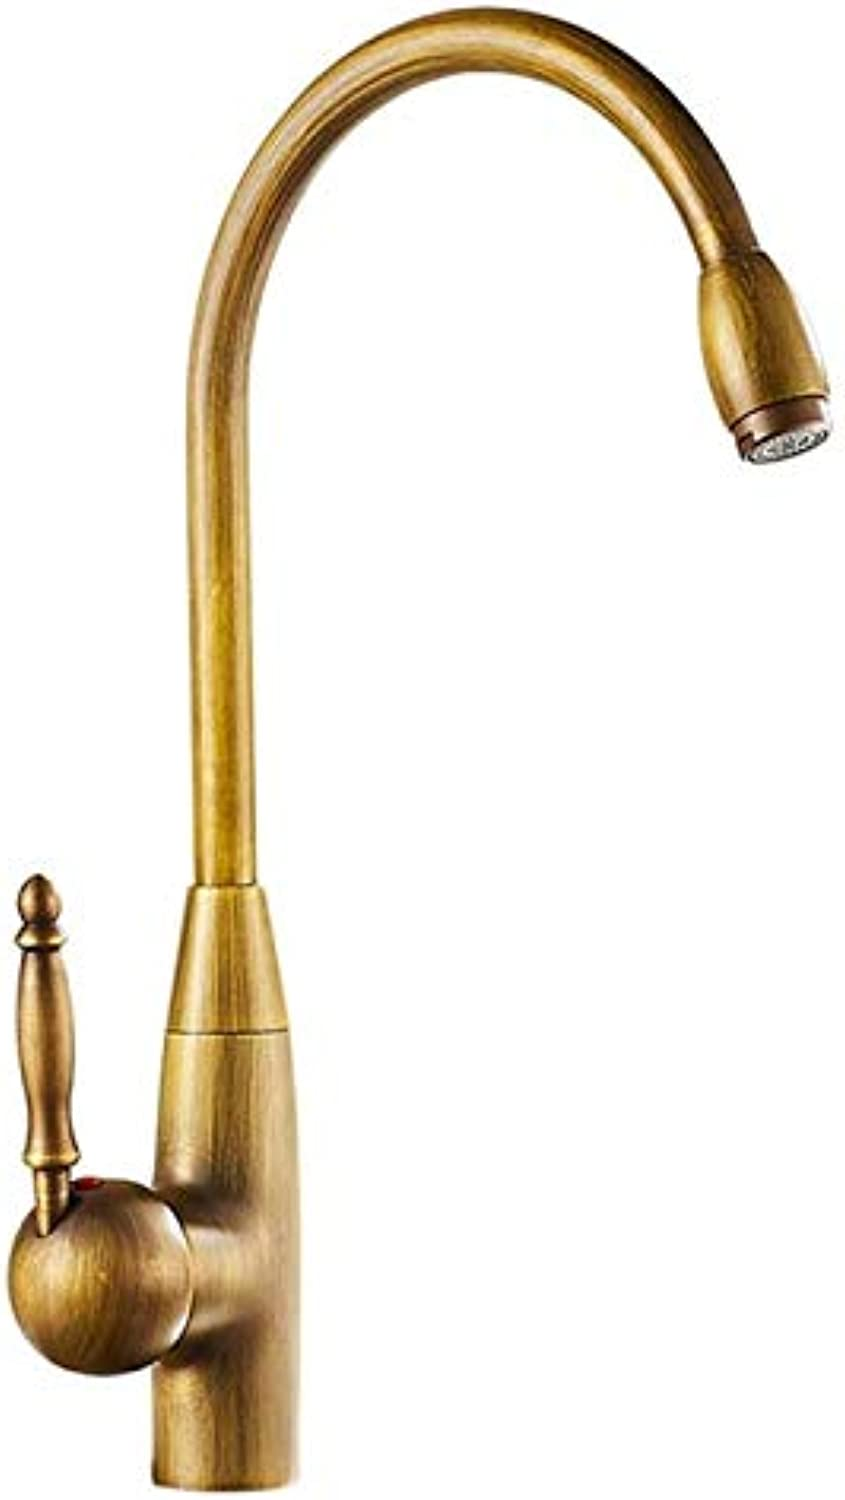 Brass Kitchen Faucet, Kitchen Faucet Faucet hot and Cold Kitchen Sink tap Faucet with redating Brass Bathroom Sink Faucet